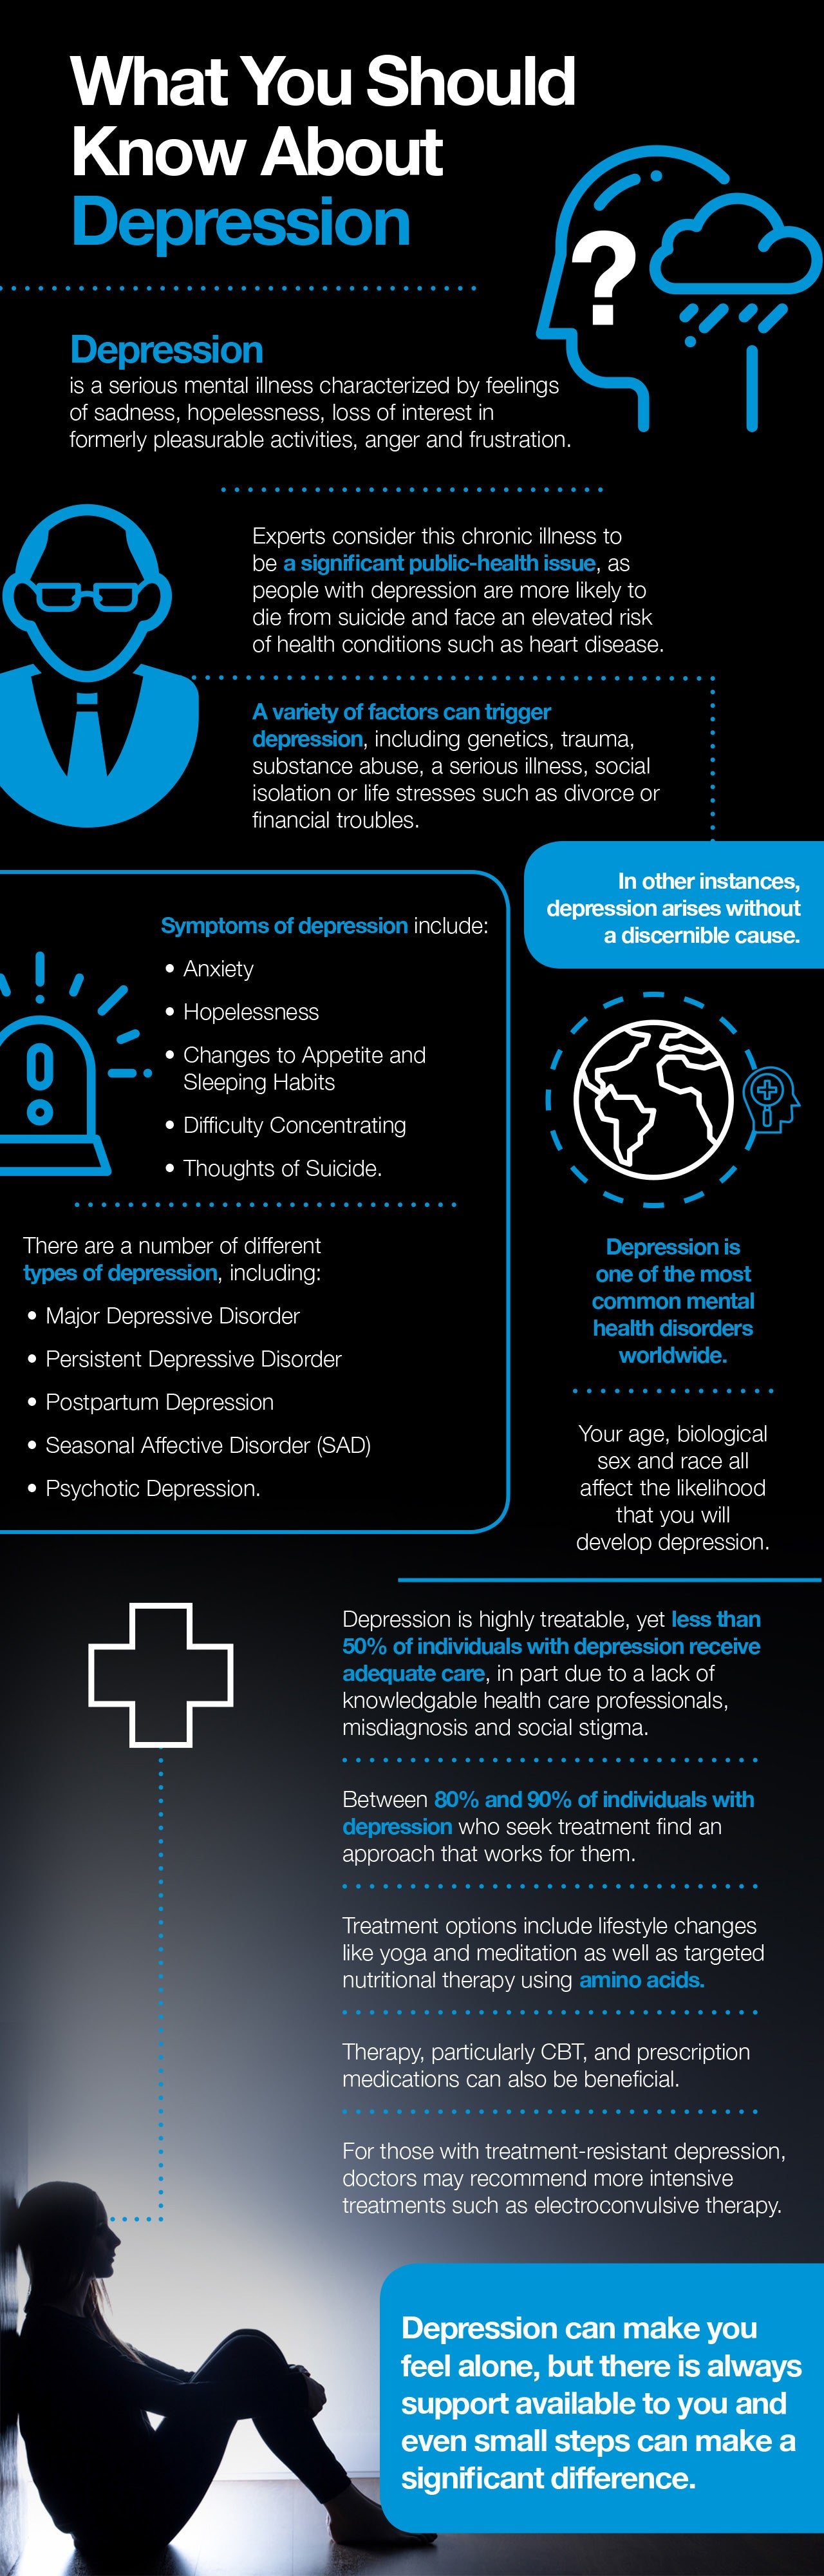 What You Should Know About Depression